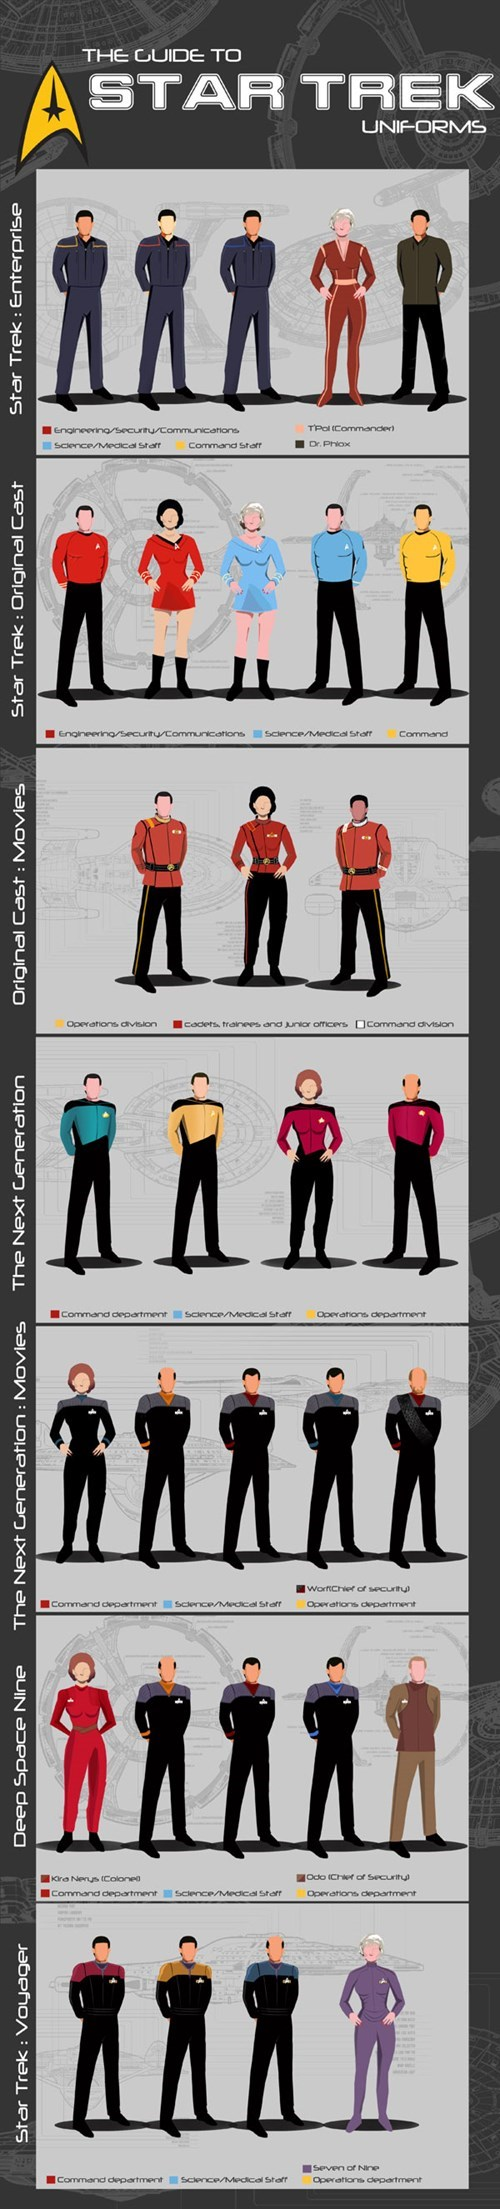 uniforms,info graphic,generations,Star Trek